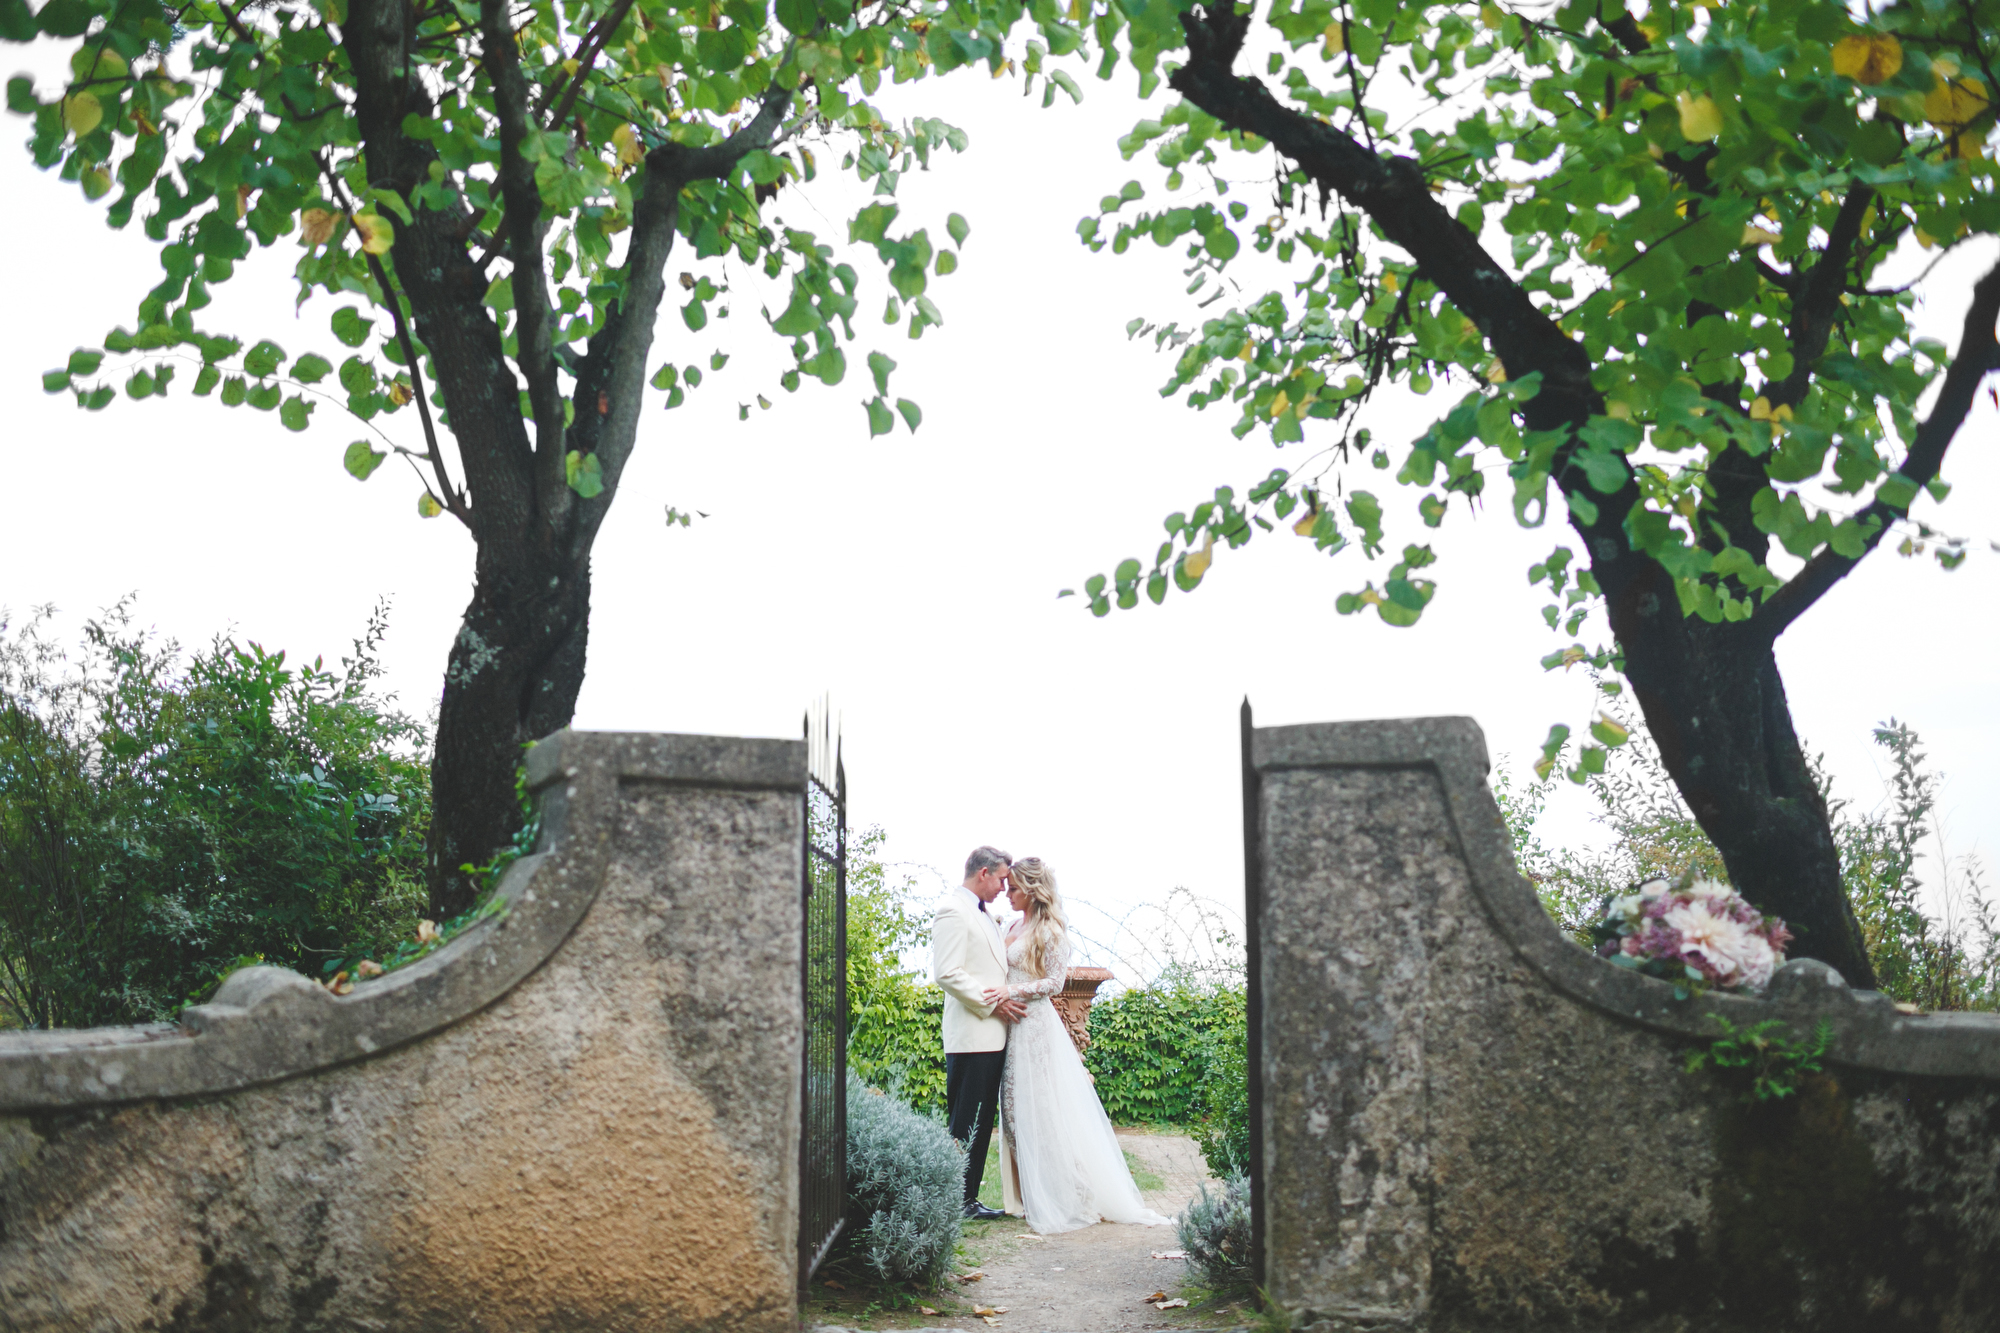 Dreamy Amalfi Coast Destination Wedding in Italy's Ravello photographed by Jennifer Skog